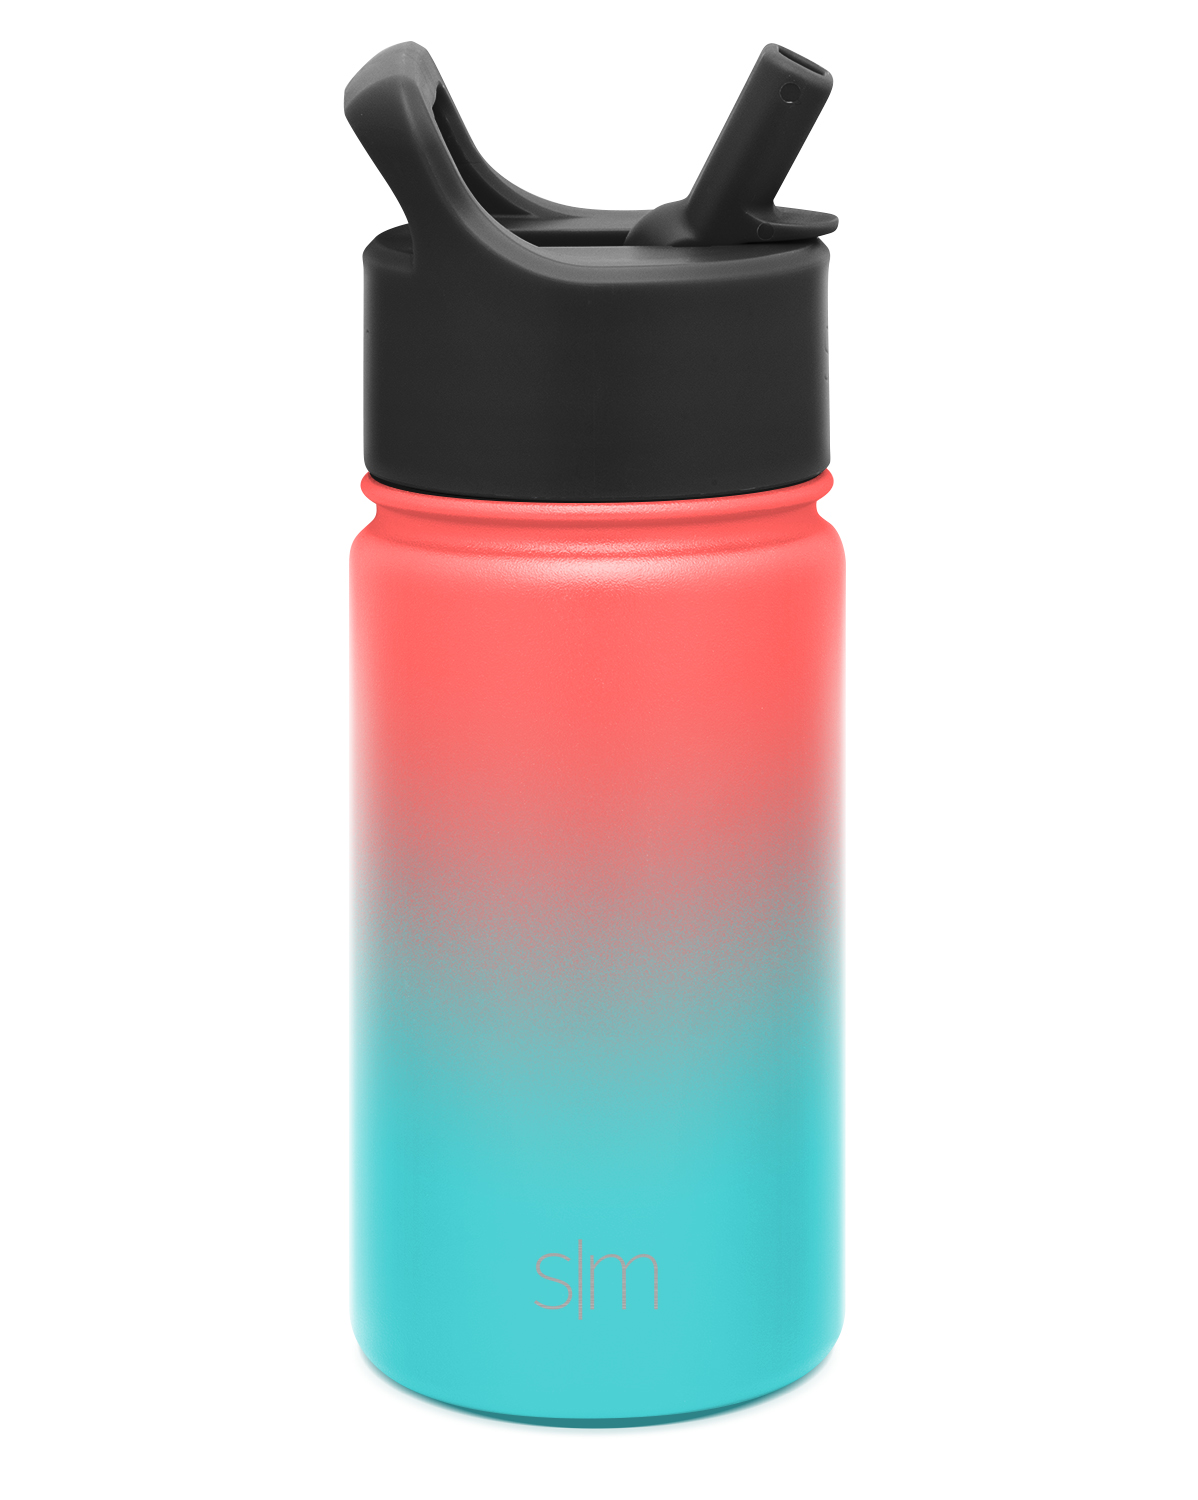 Simple-Modern-Summit-Water-Bottle-with-Straw-Lid-Vacuum-Insulated-Kid-039-s-Cup thumbnail 14